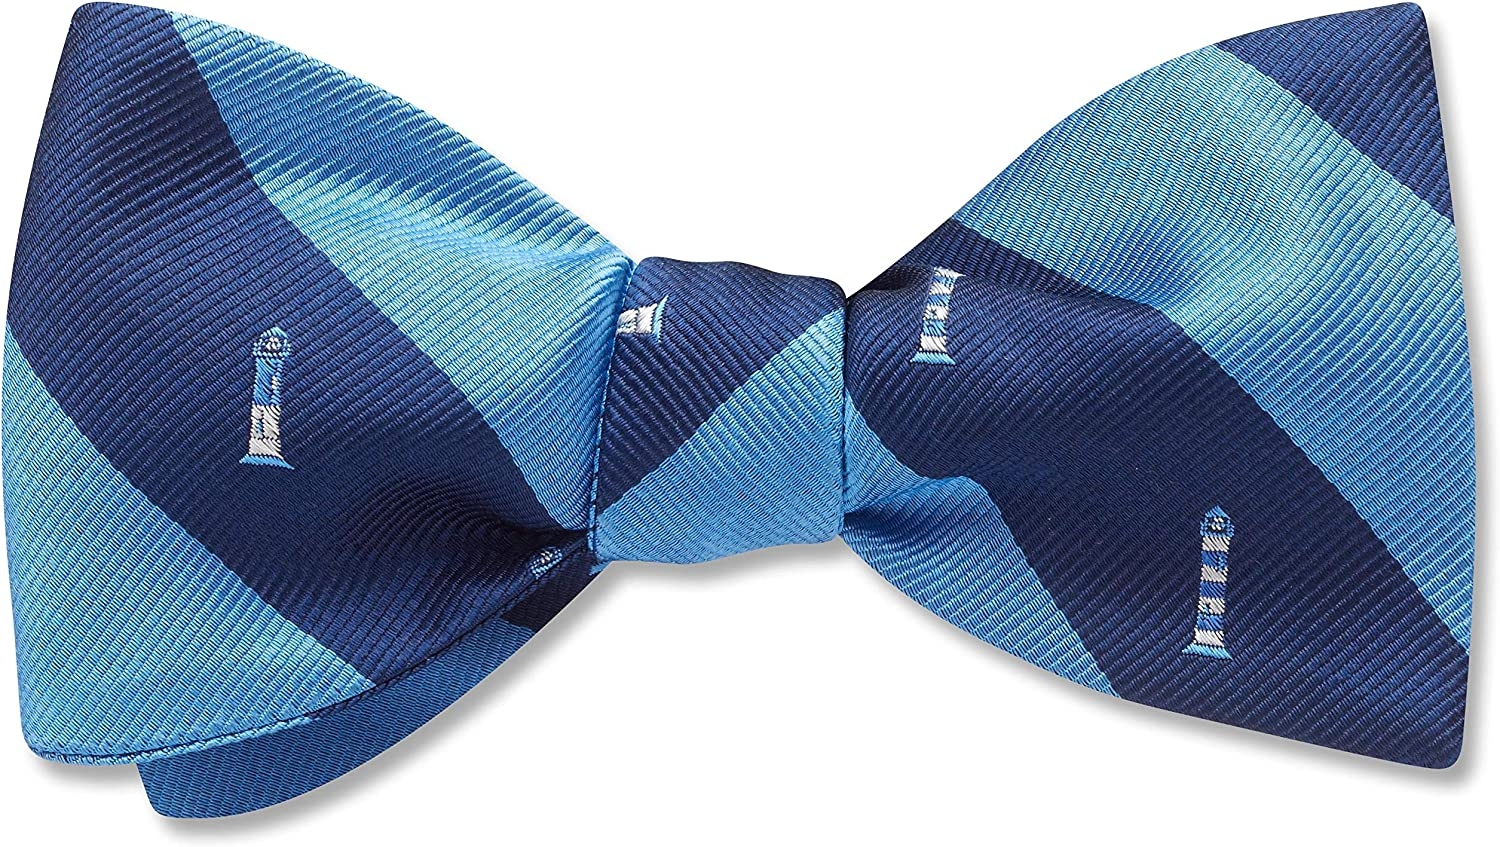 Bass Harbor Striped,Passions & Pleasure,Blue Striped, Men's Bow Tie, Handmade in the USA